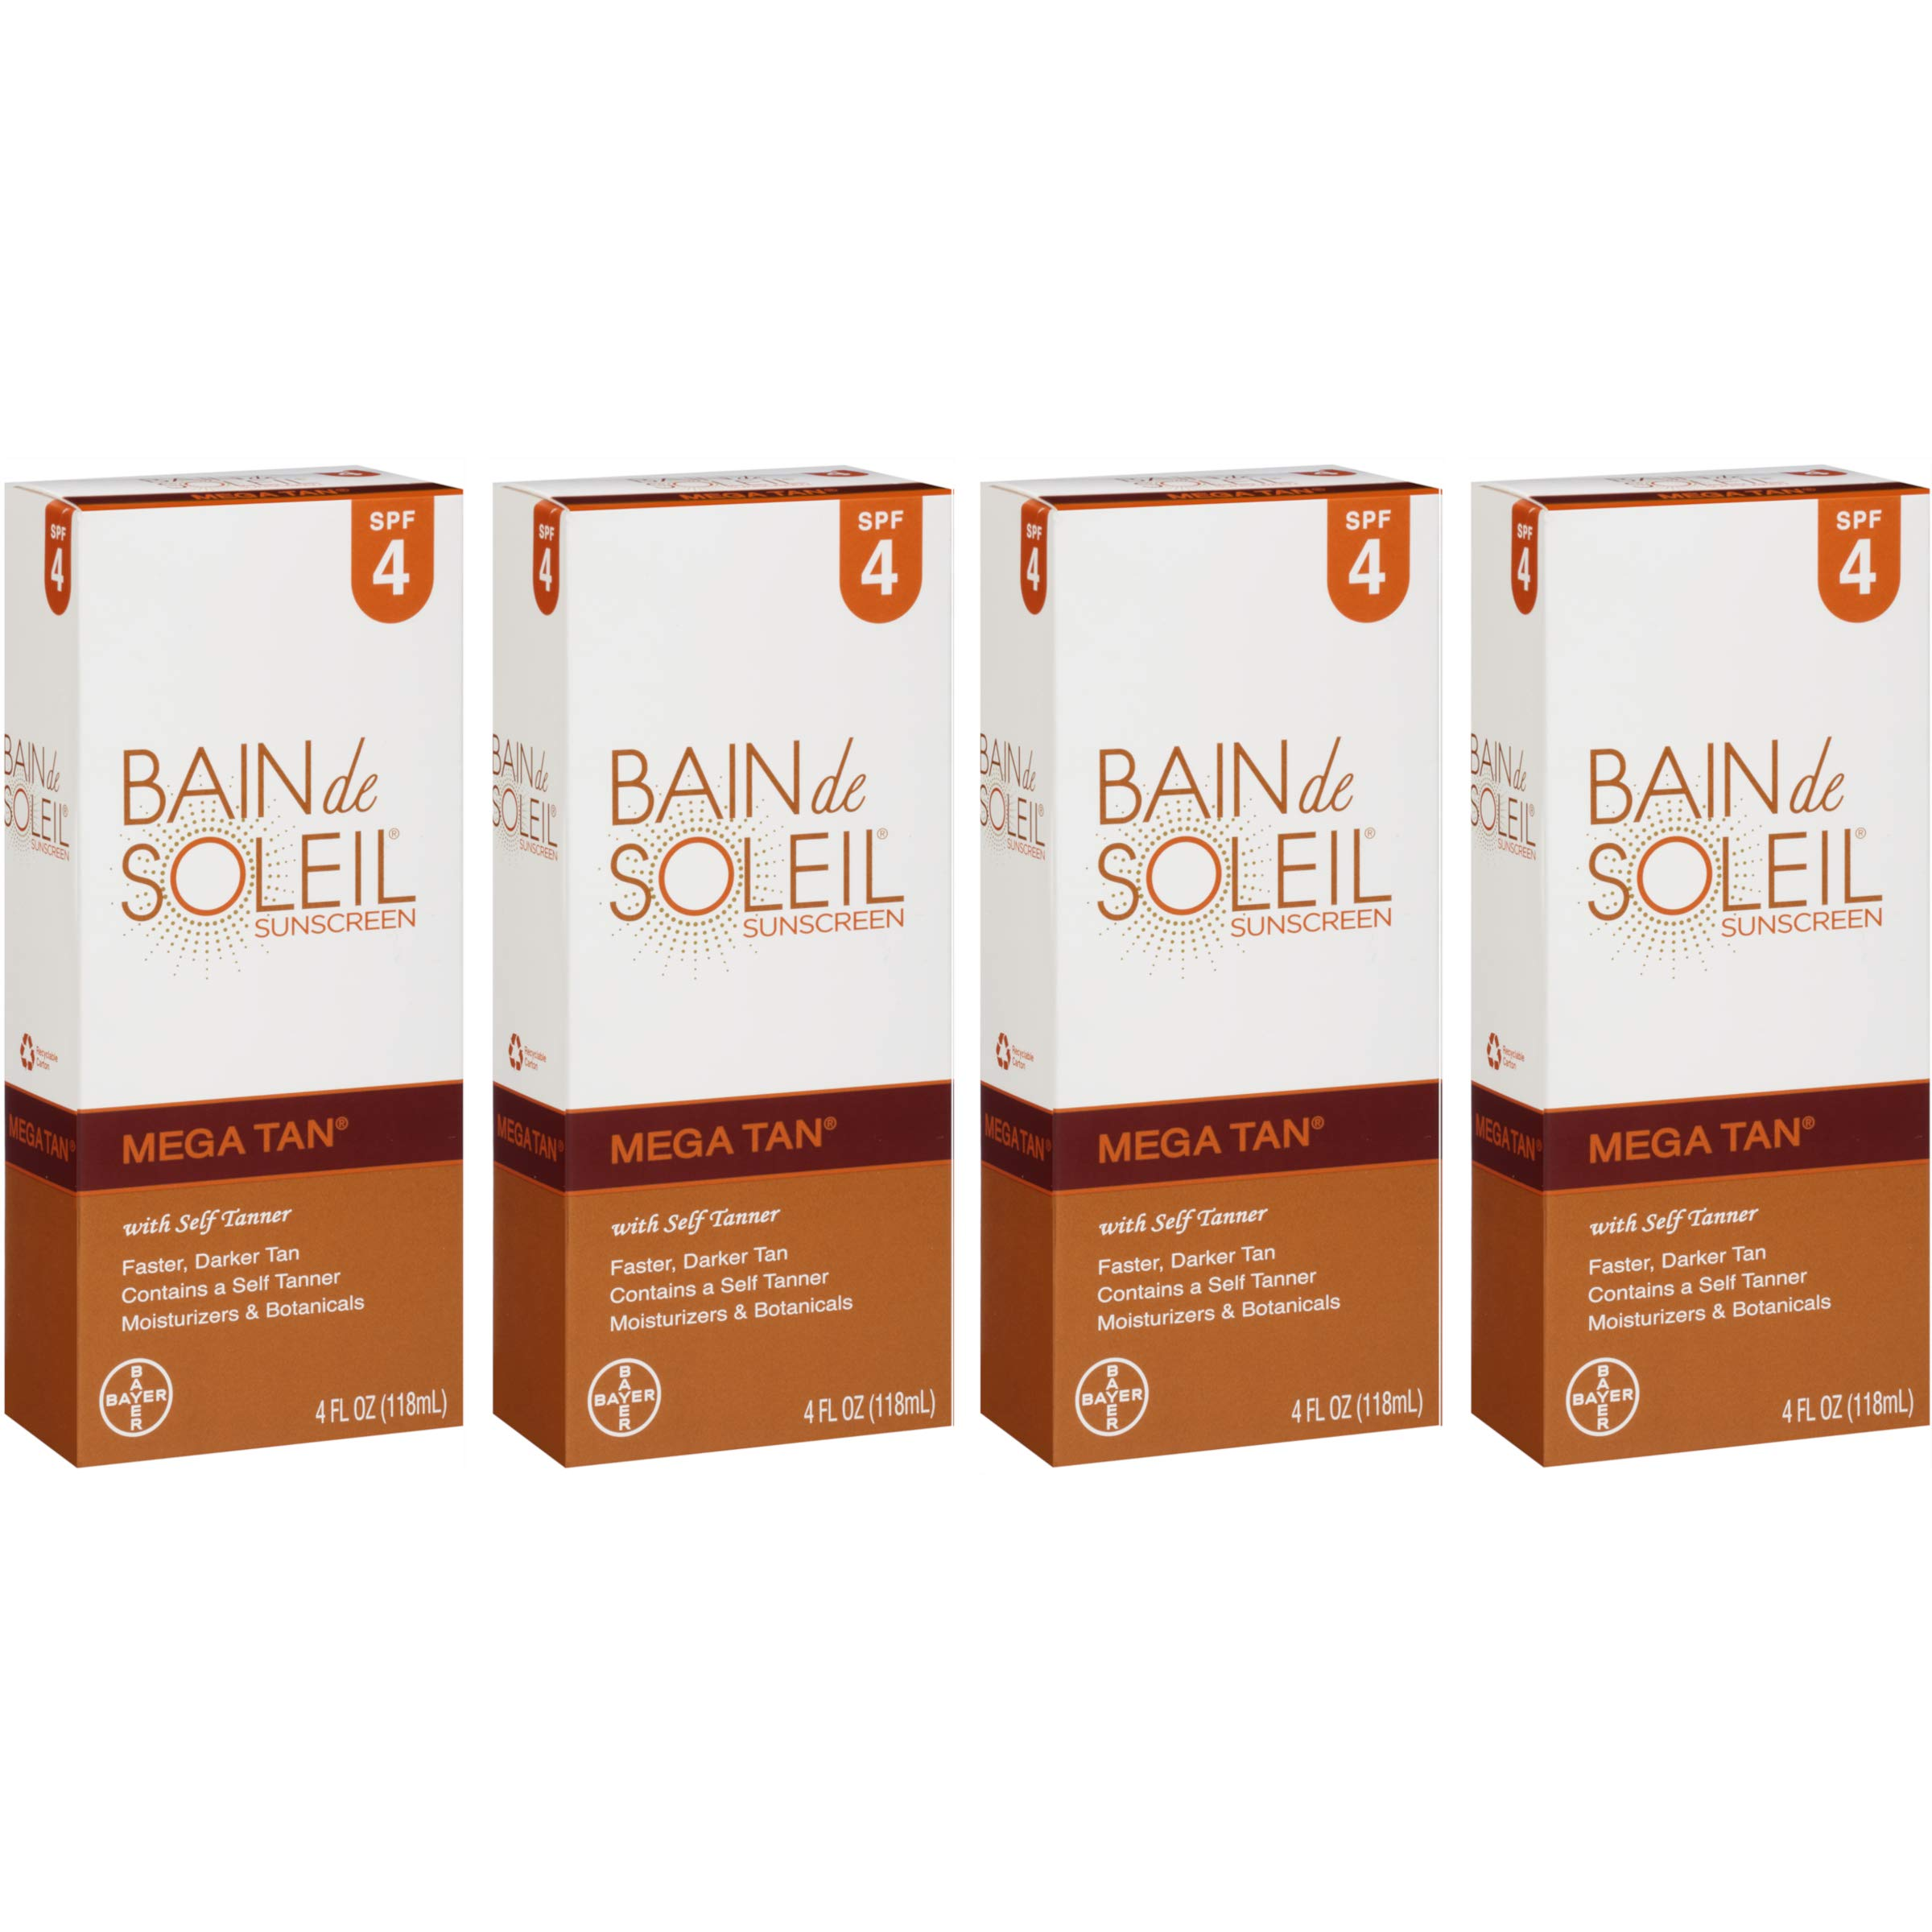 Bain de Soleil Mega Tan Sunscreen With Self Tanner, SPF 4 4 oz (Pack of 4)